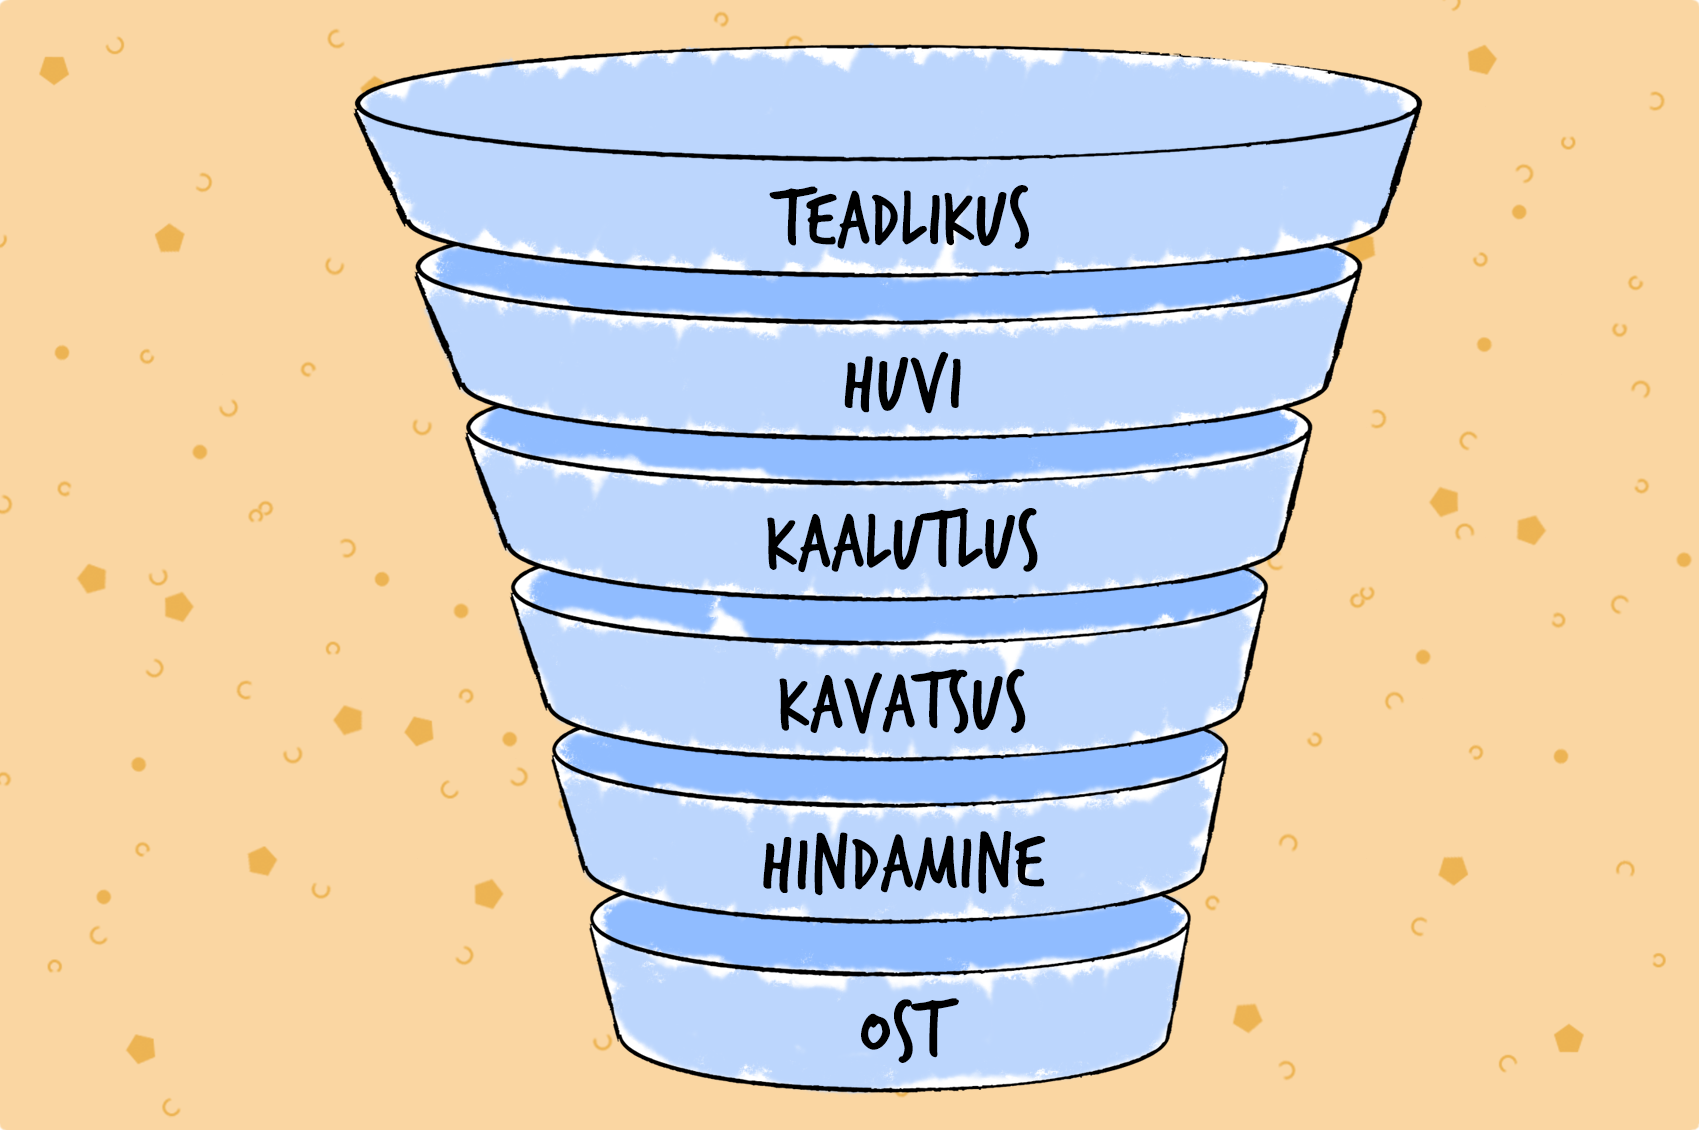 Adovinci Turundustoru (Marketing Funnel)